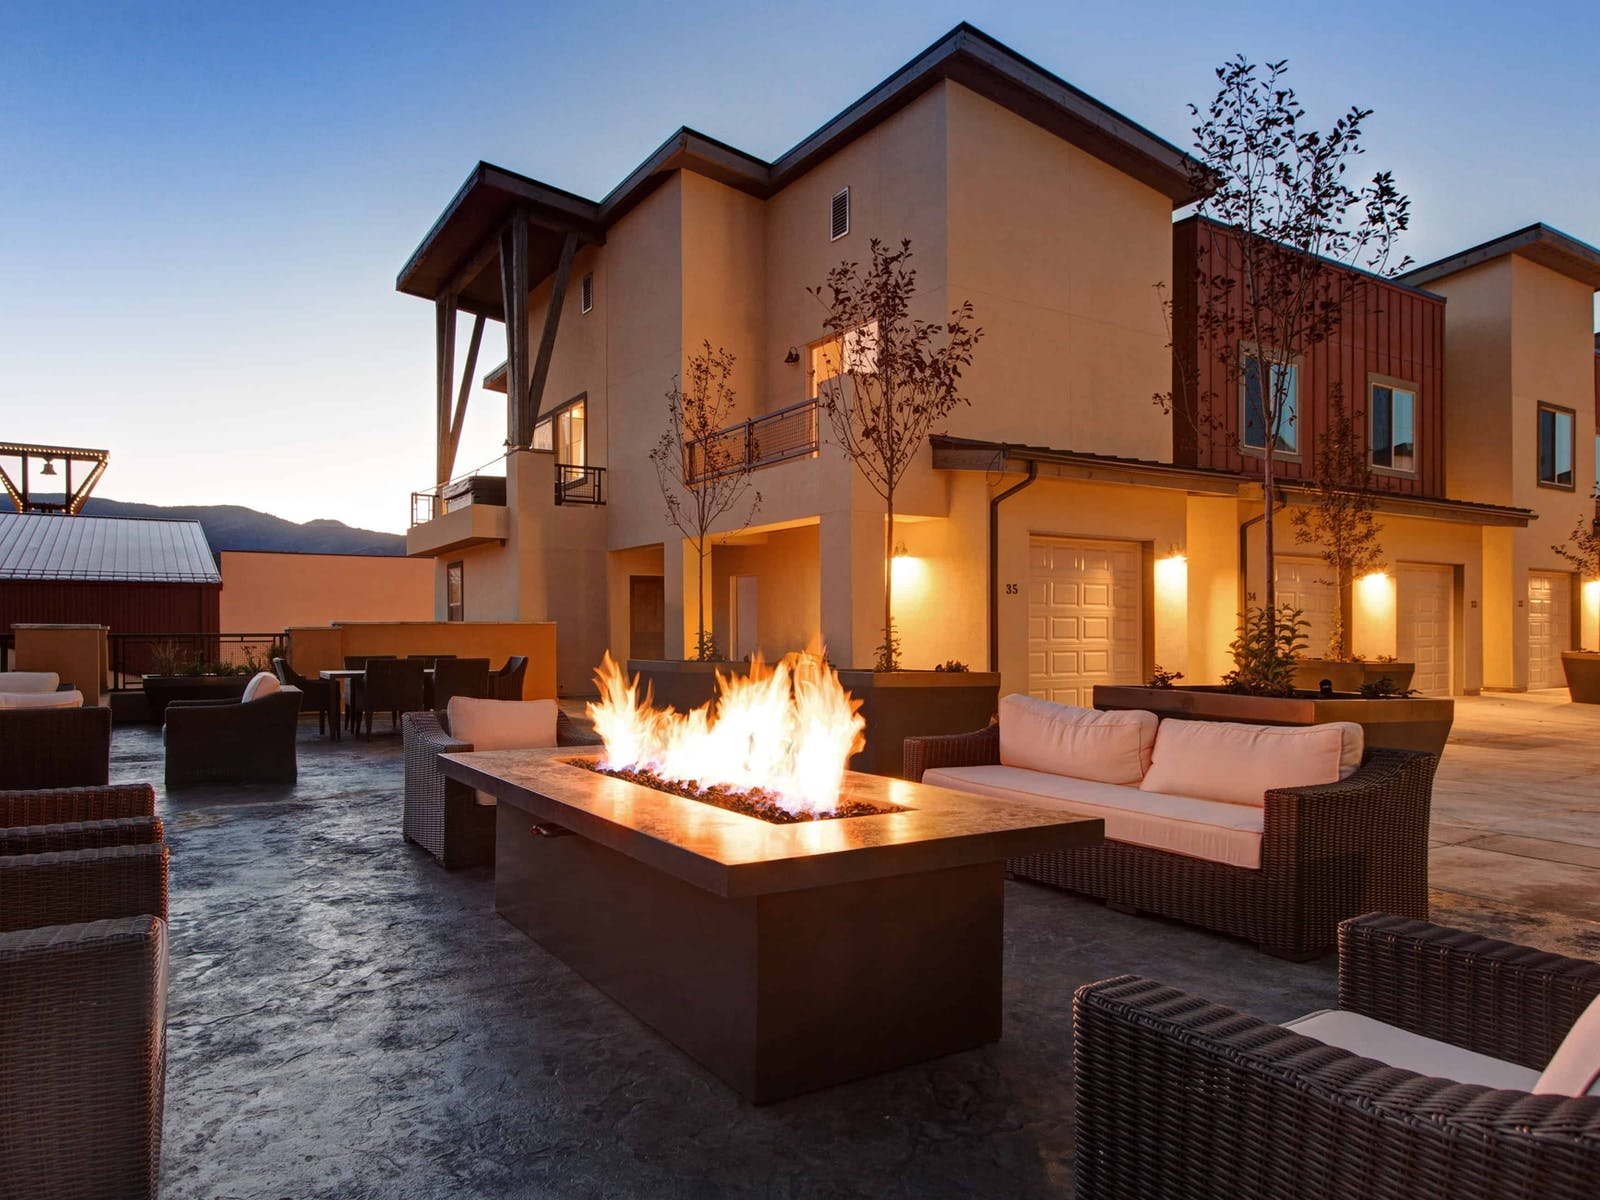 a community fireplace at a condo complex in Park City, UT